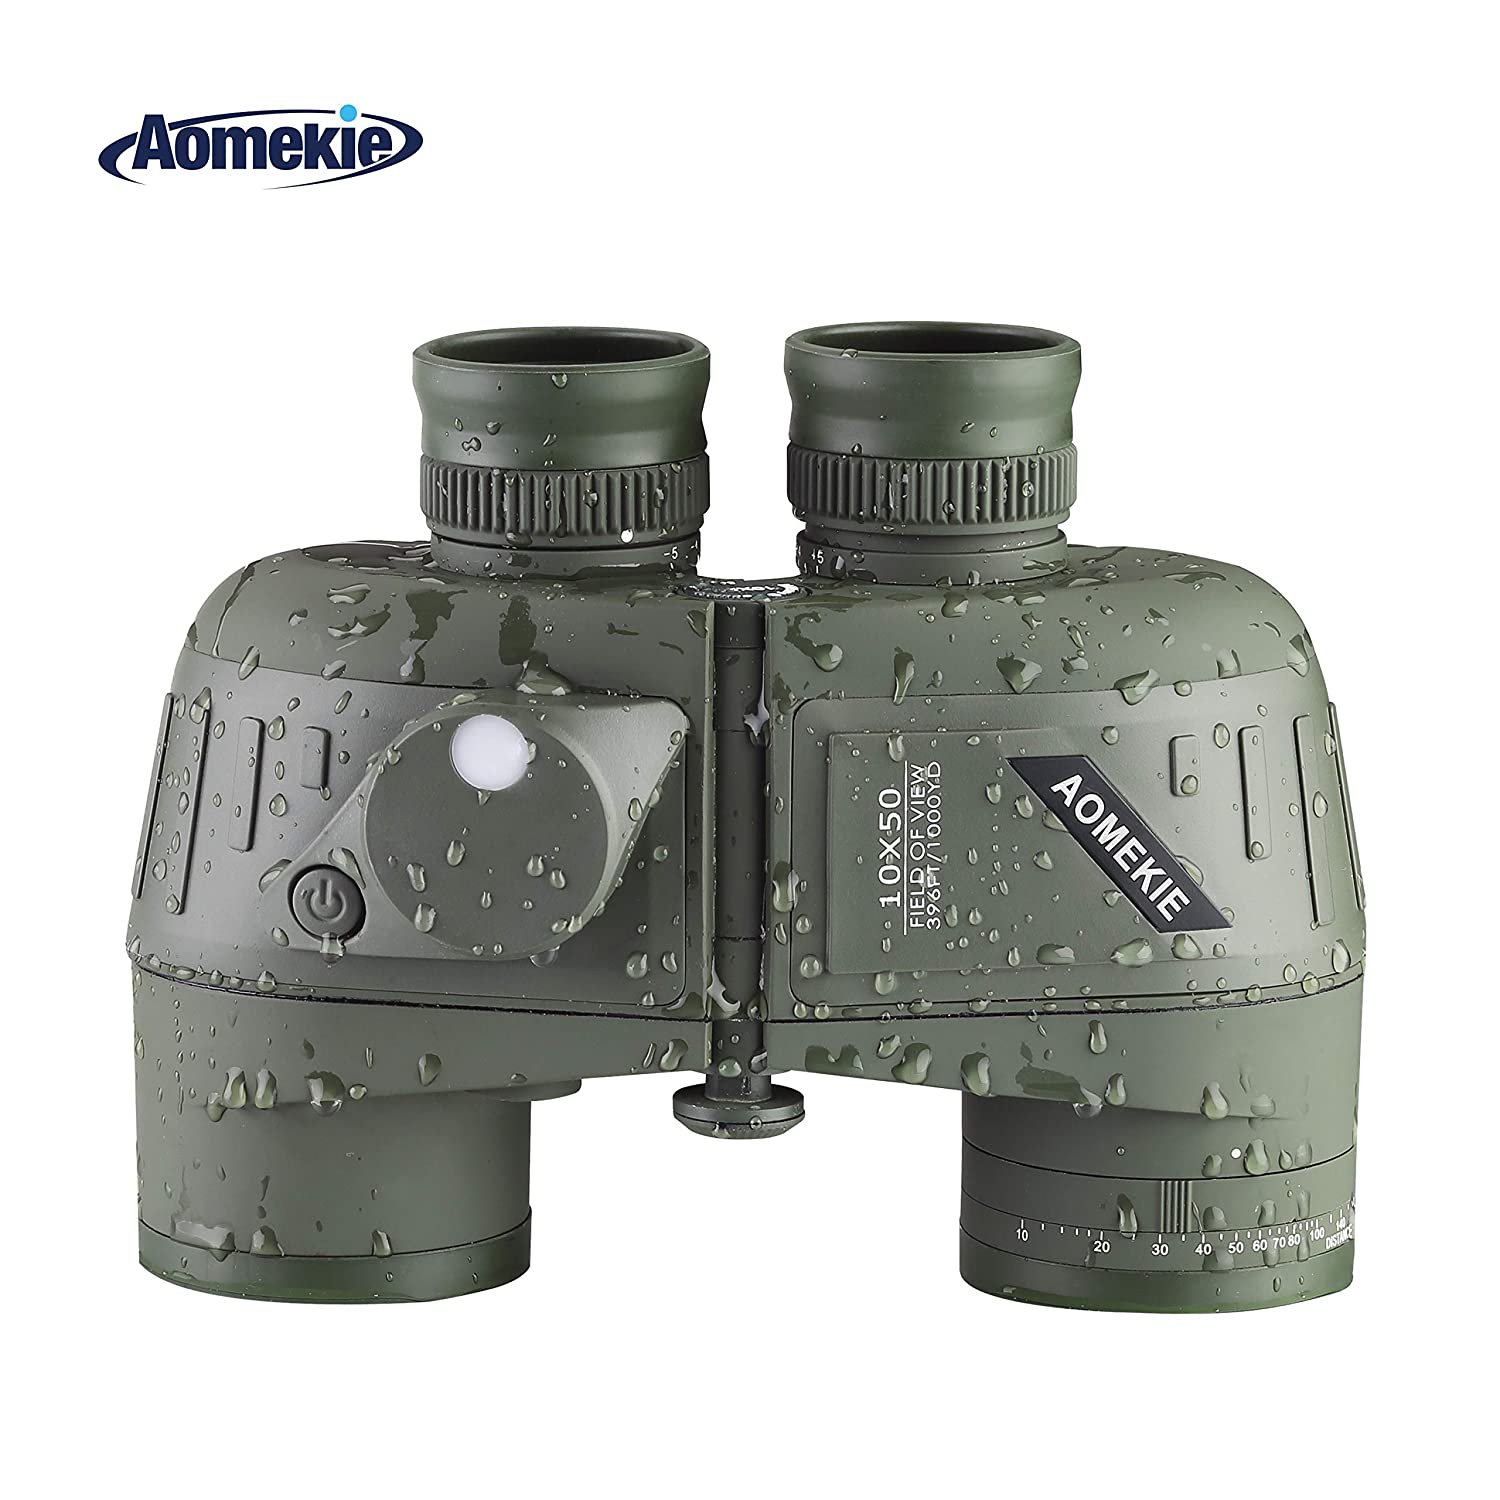 Aomekie Marine Military Binoculars for Adults 10×50 Waterproof Binoculars with Rangefinder Compass BAK4 Prism FMC Lens for Birdwatching Hunting Boating Green